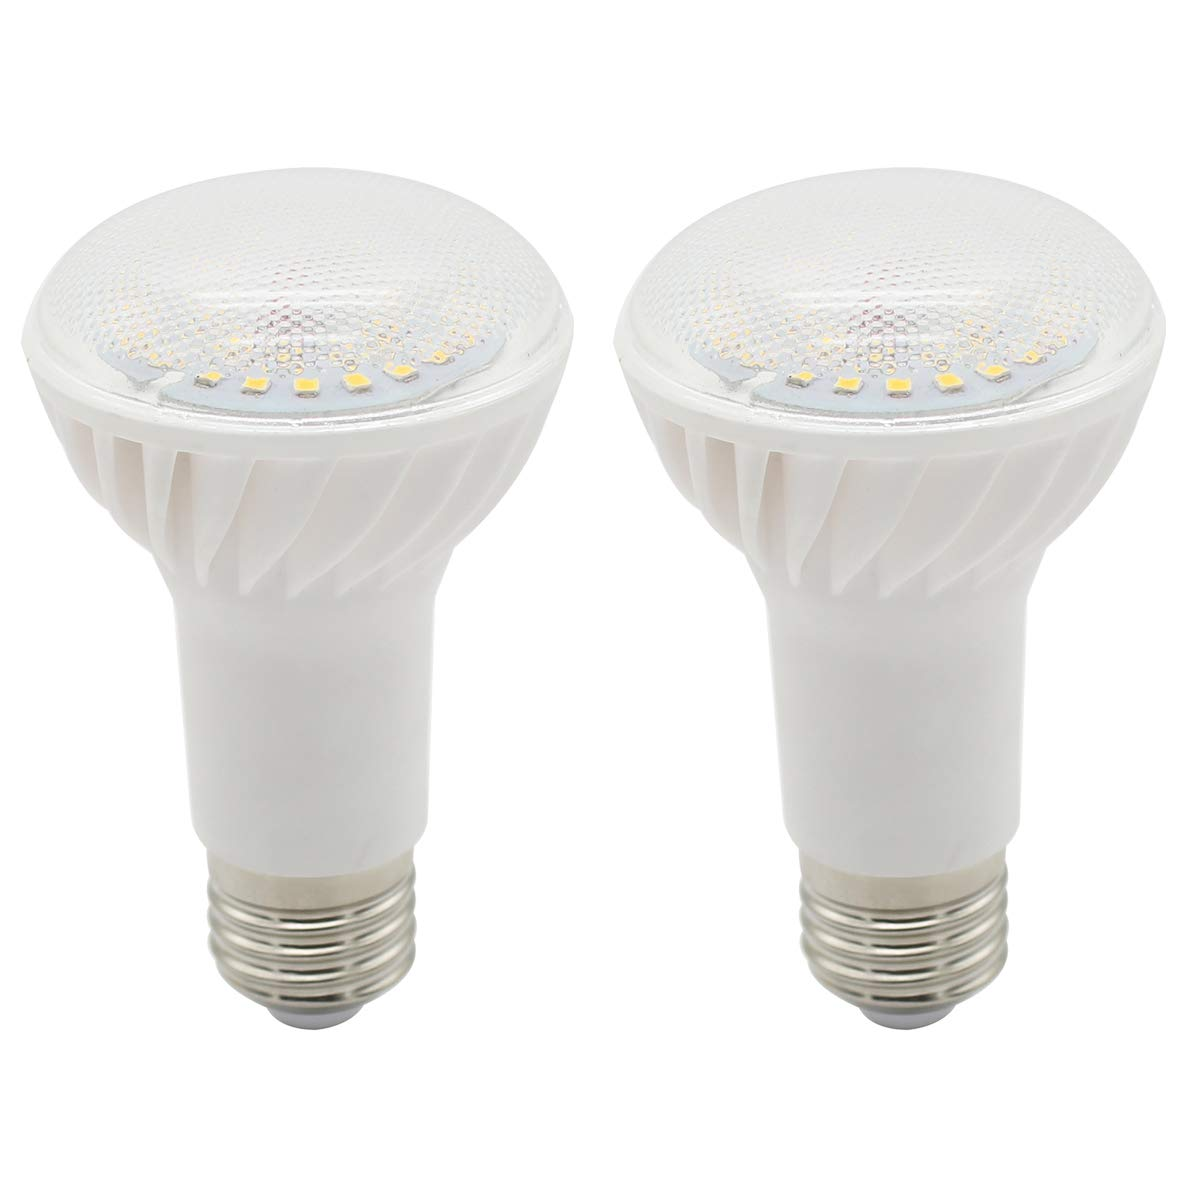 Ceramic Natural White, Not Dimmable 12W 1080Lm 100W Replacement Reflector LED Bulbs 2-Pack R63 Reflector E27 LED Bulb